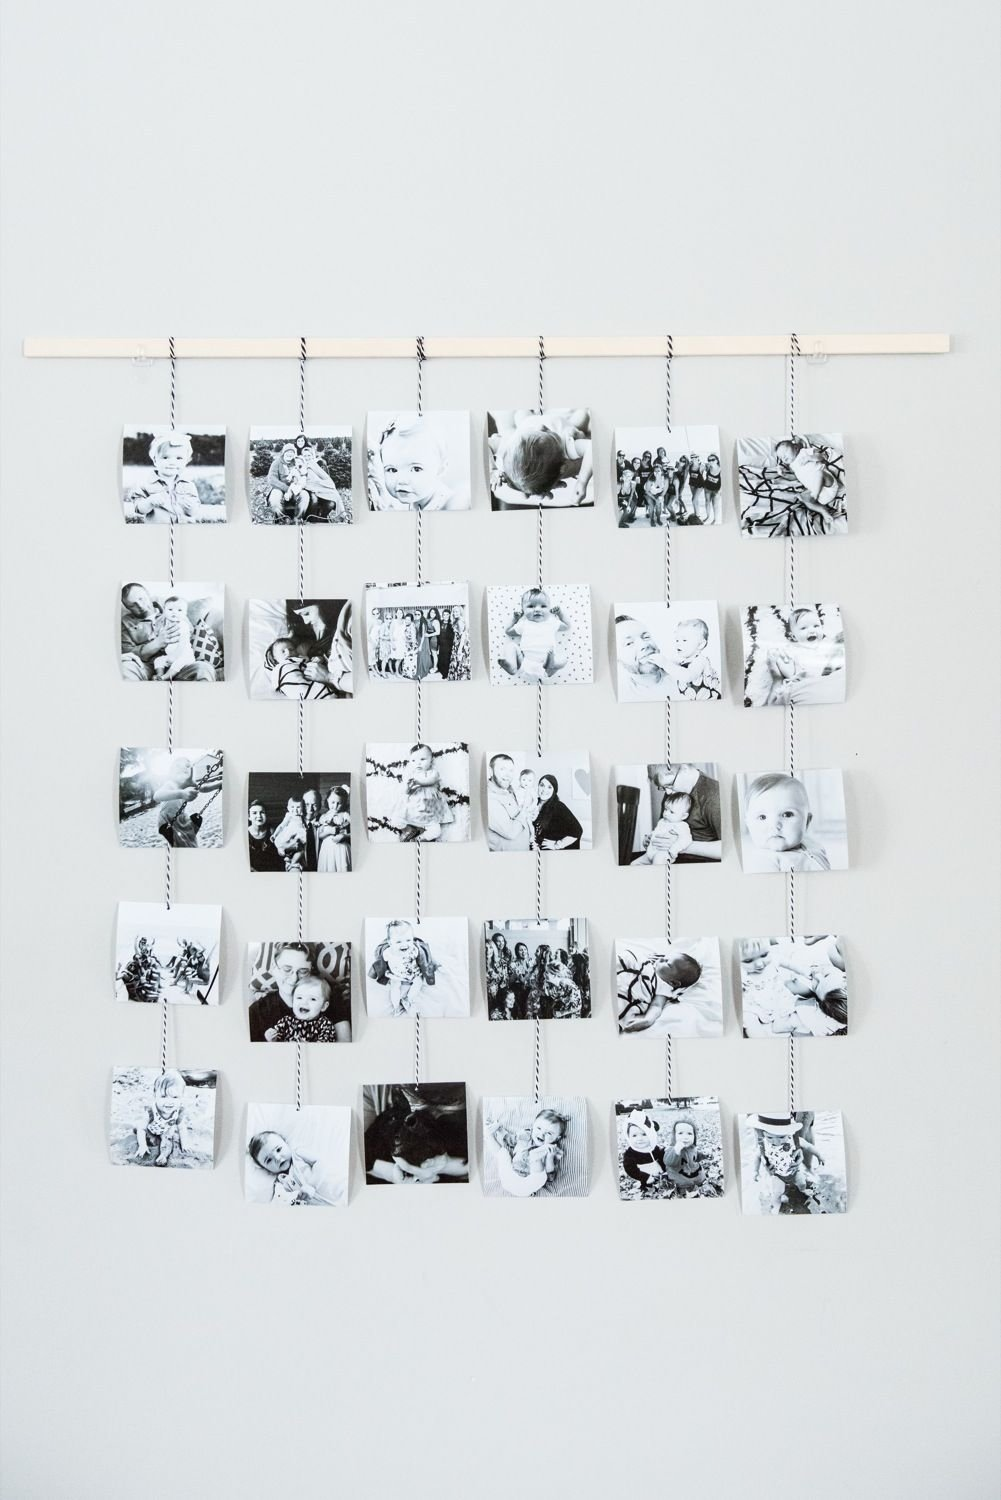 10 Unique Hanging Pictures On Wall Ideas diy family photo wall hanging photo wall diy ideas and ornament 1 2020